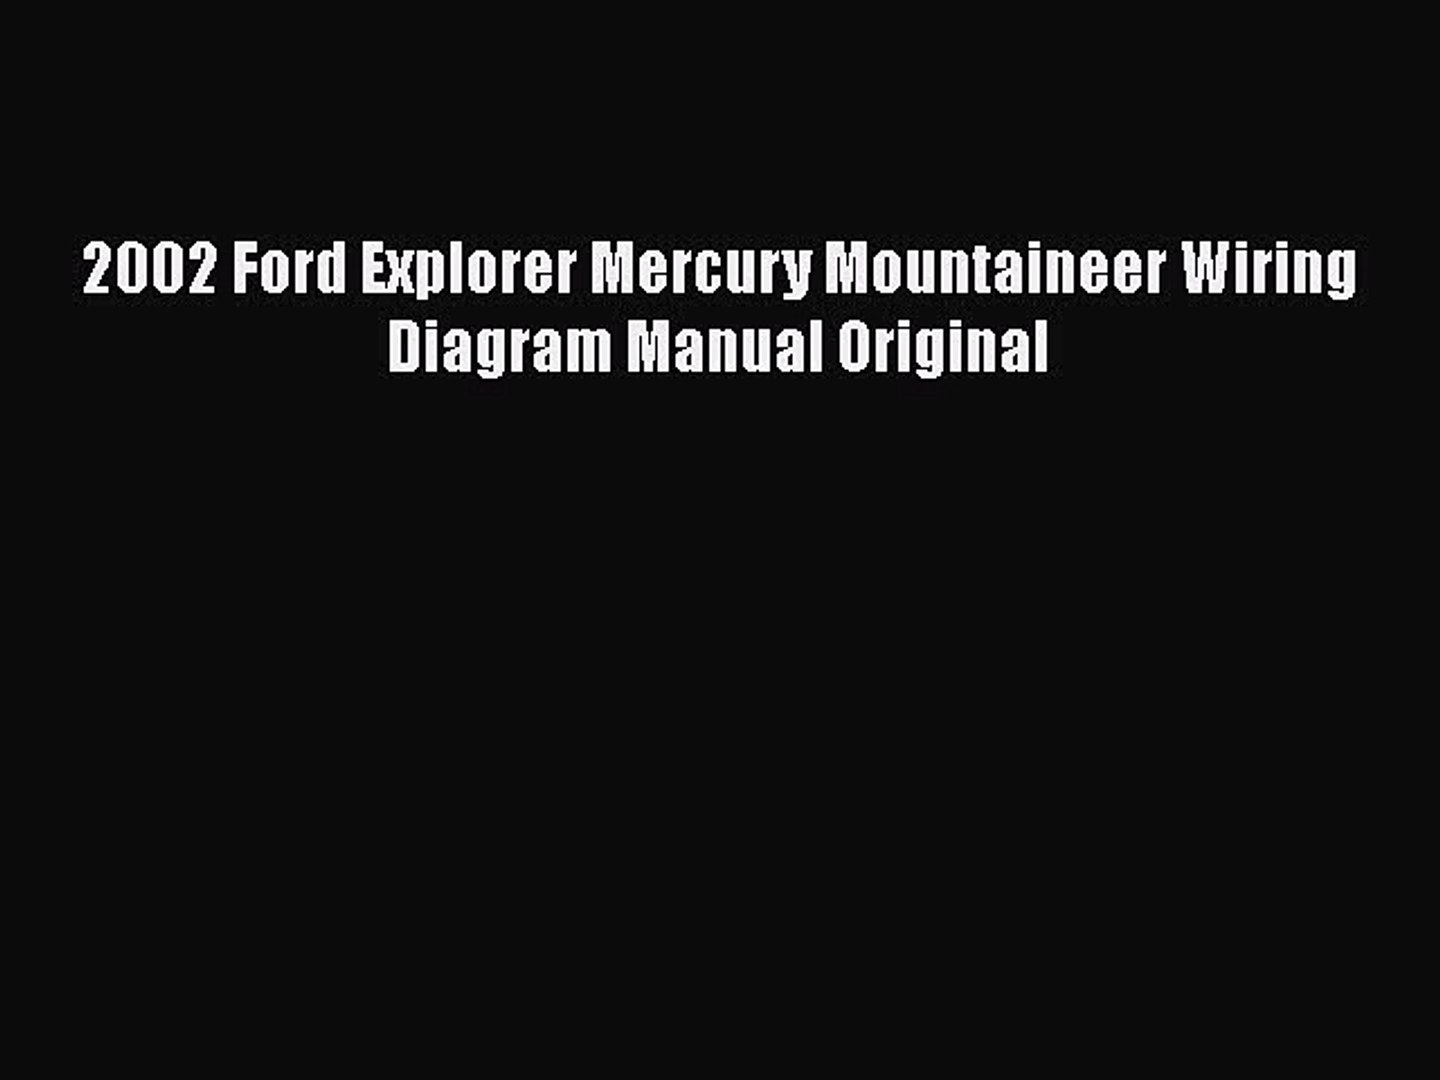 2002 ford explorer wiring diagram pdf download  2002 ford explorer mercury mountaineer wiring 2002 ford explorer wiring harness diagram 2002 ford explorer mercury mountaineer